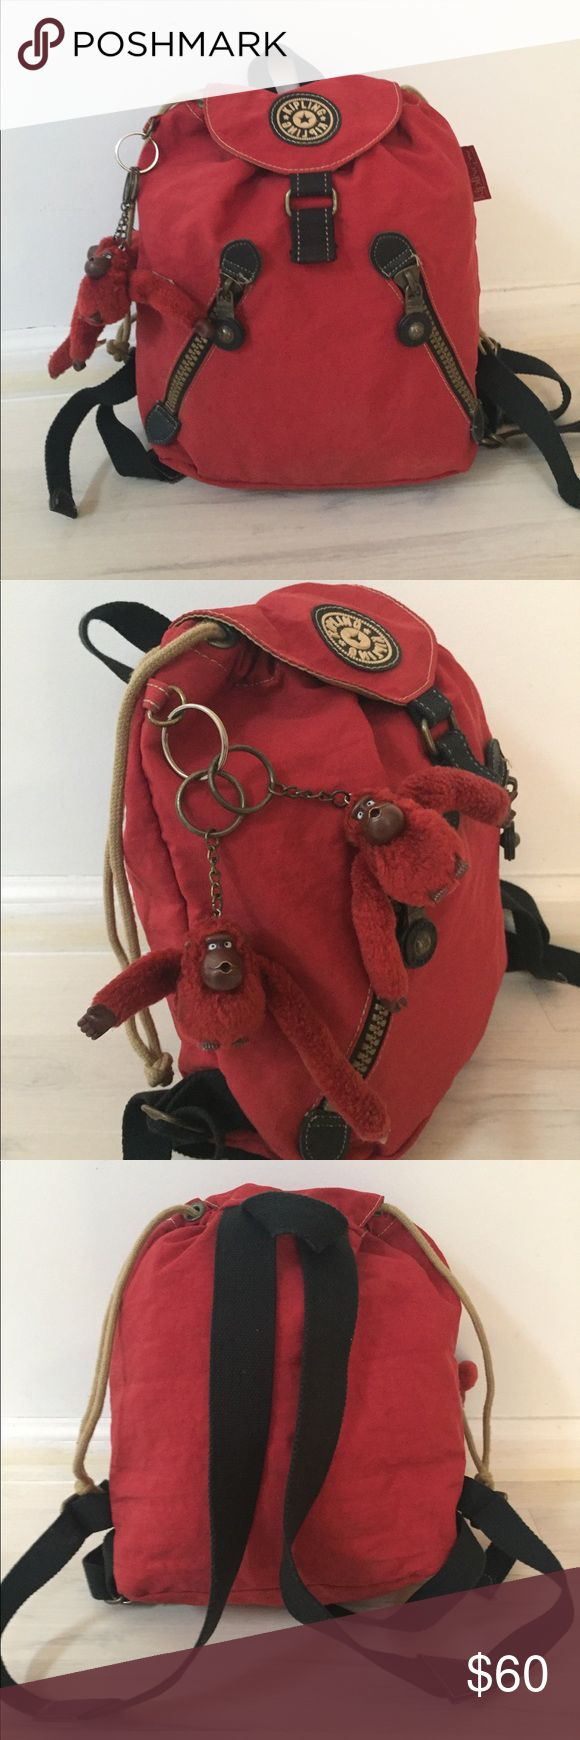 Kipling small red backpack. NWOT! 12 x 7 x 13   Three interior and exterior compartments perfect for traveling and hiking, with two red Kipling monkeys attached. Great for school box small laptops and can be used as an overnight bag or to add a pop of color to your outfit!  Bonus extra monkey included for a total of two! Kipling Bags Backpacks